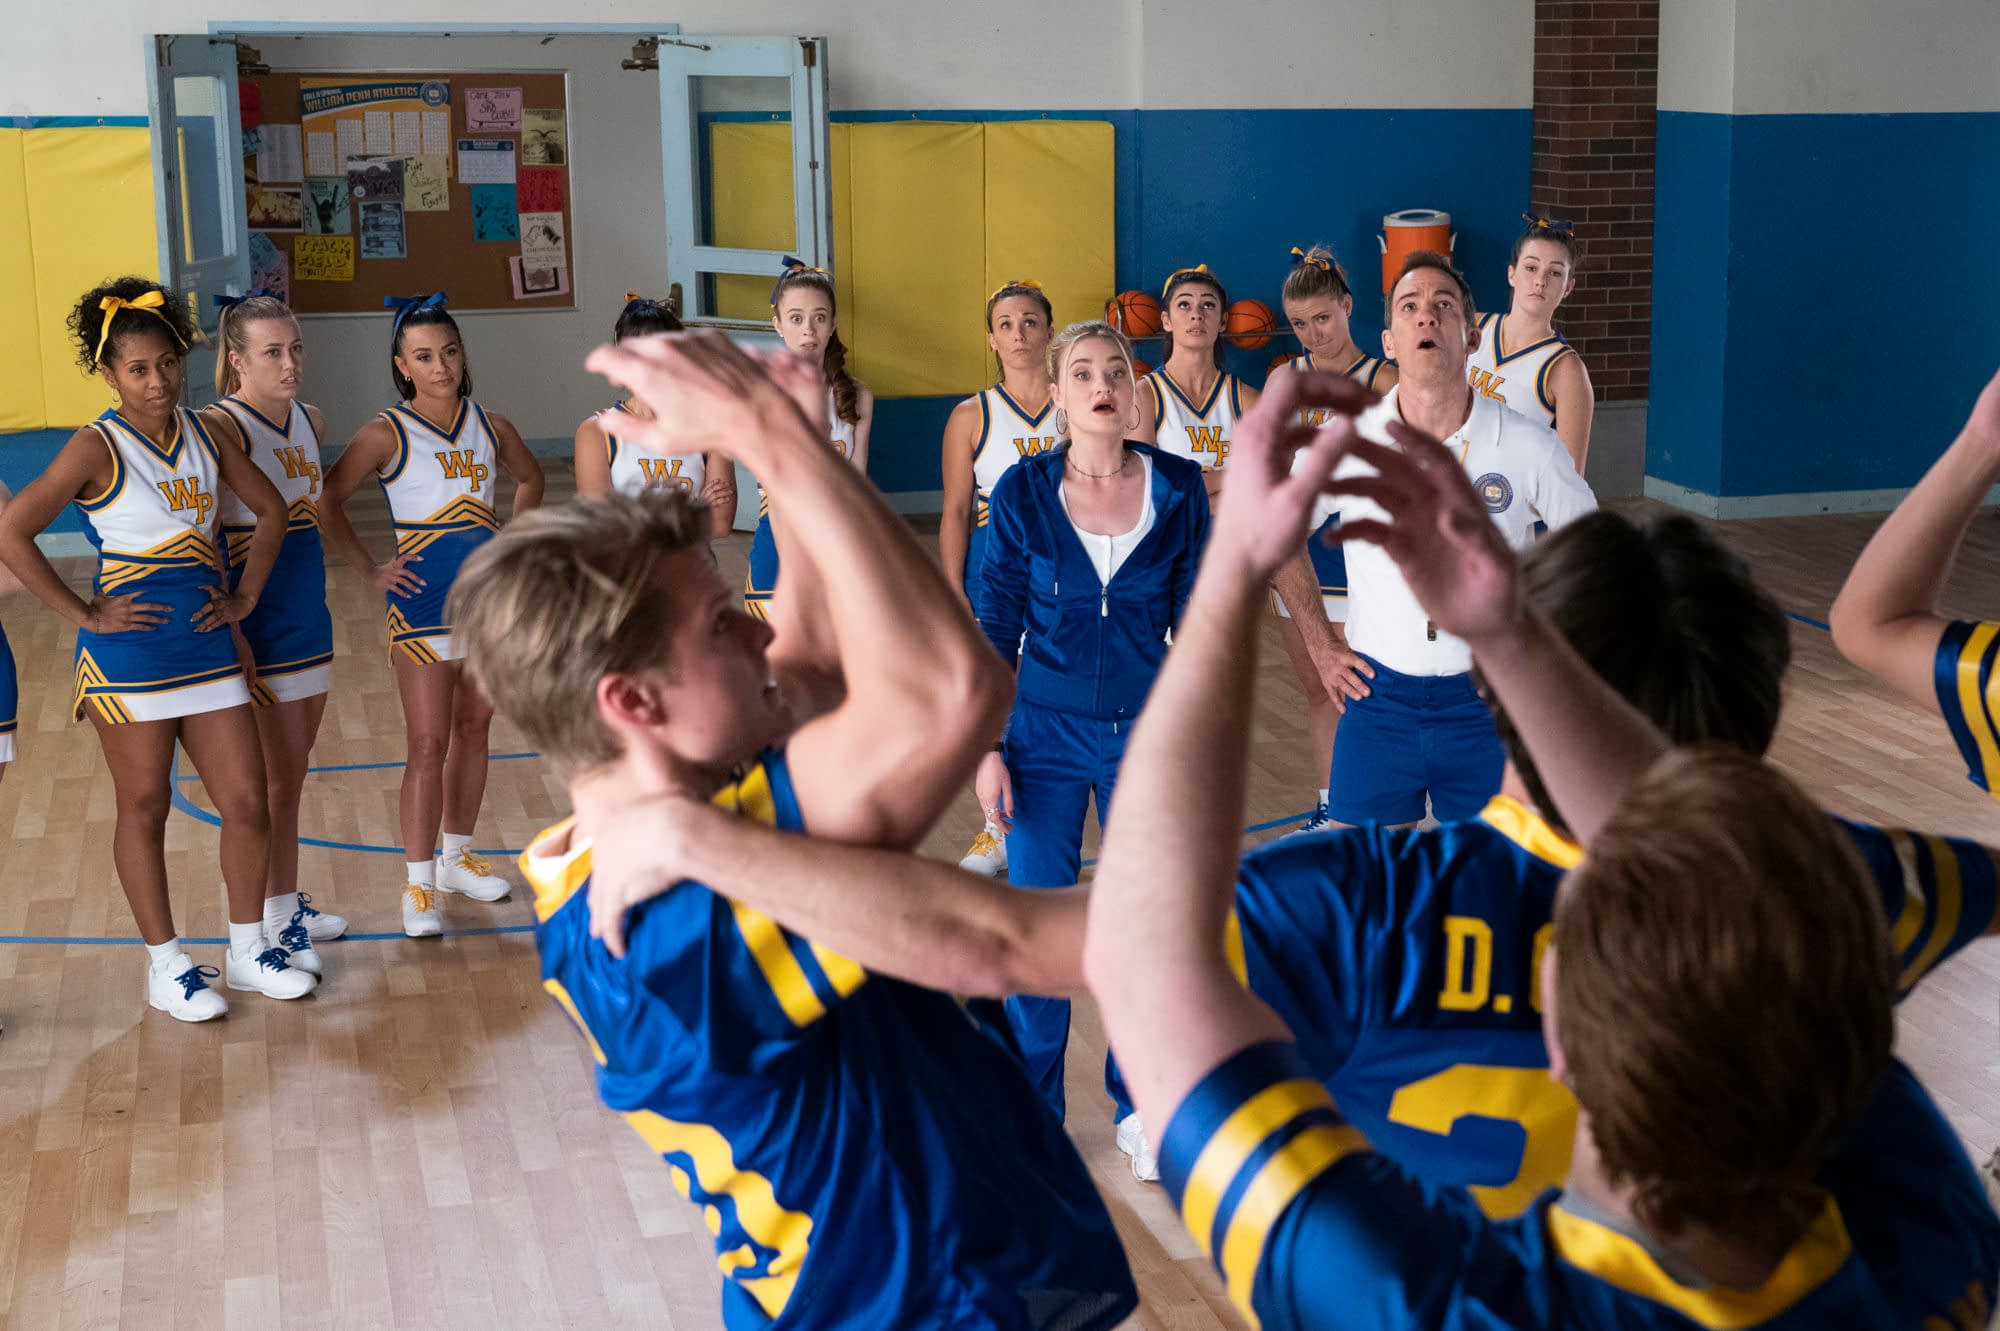 """'Schooled' Season 1 Episode 10 """"There's No Fighting In Fight Club"""" [Spoiler Review]"""